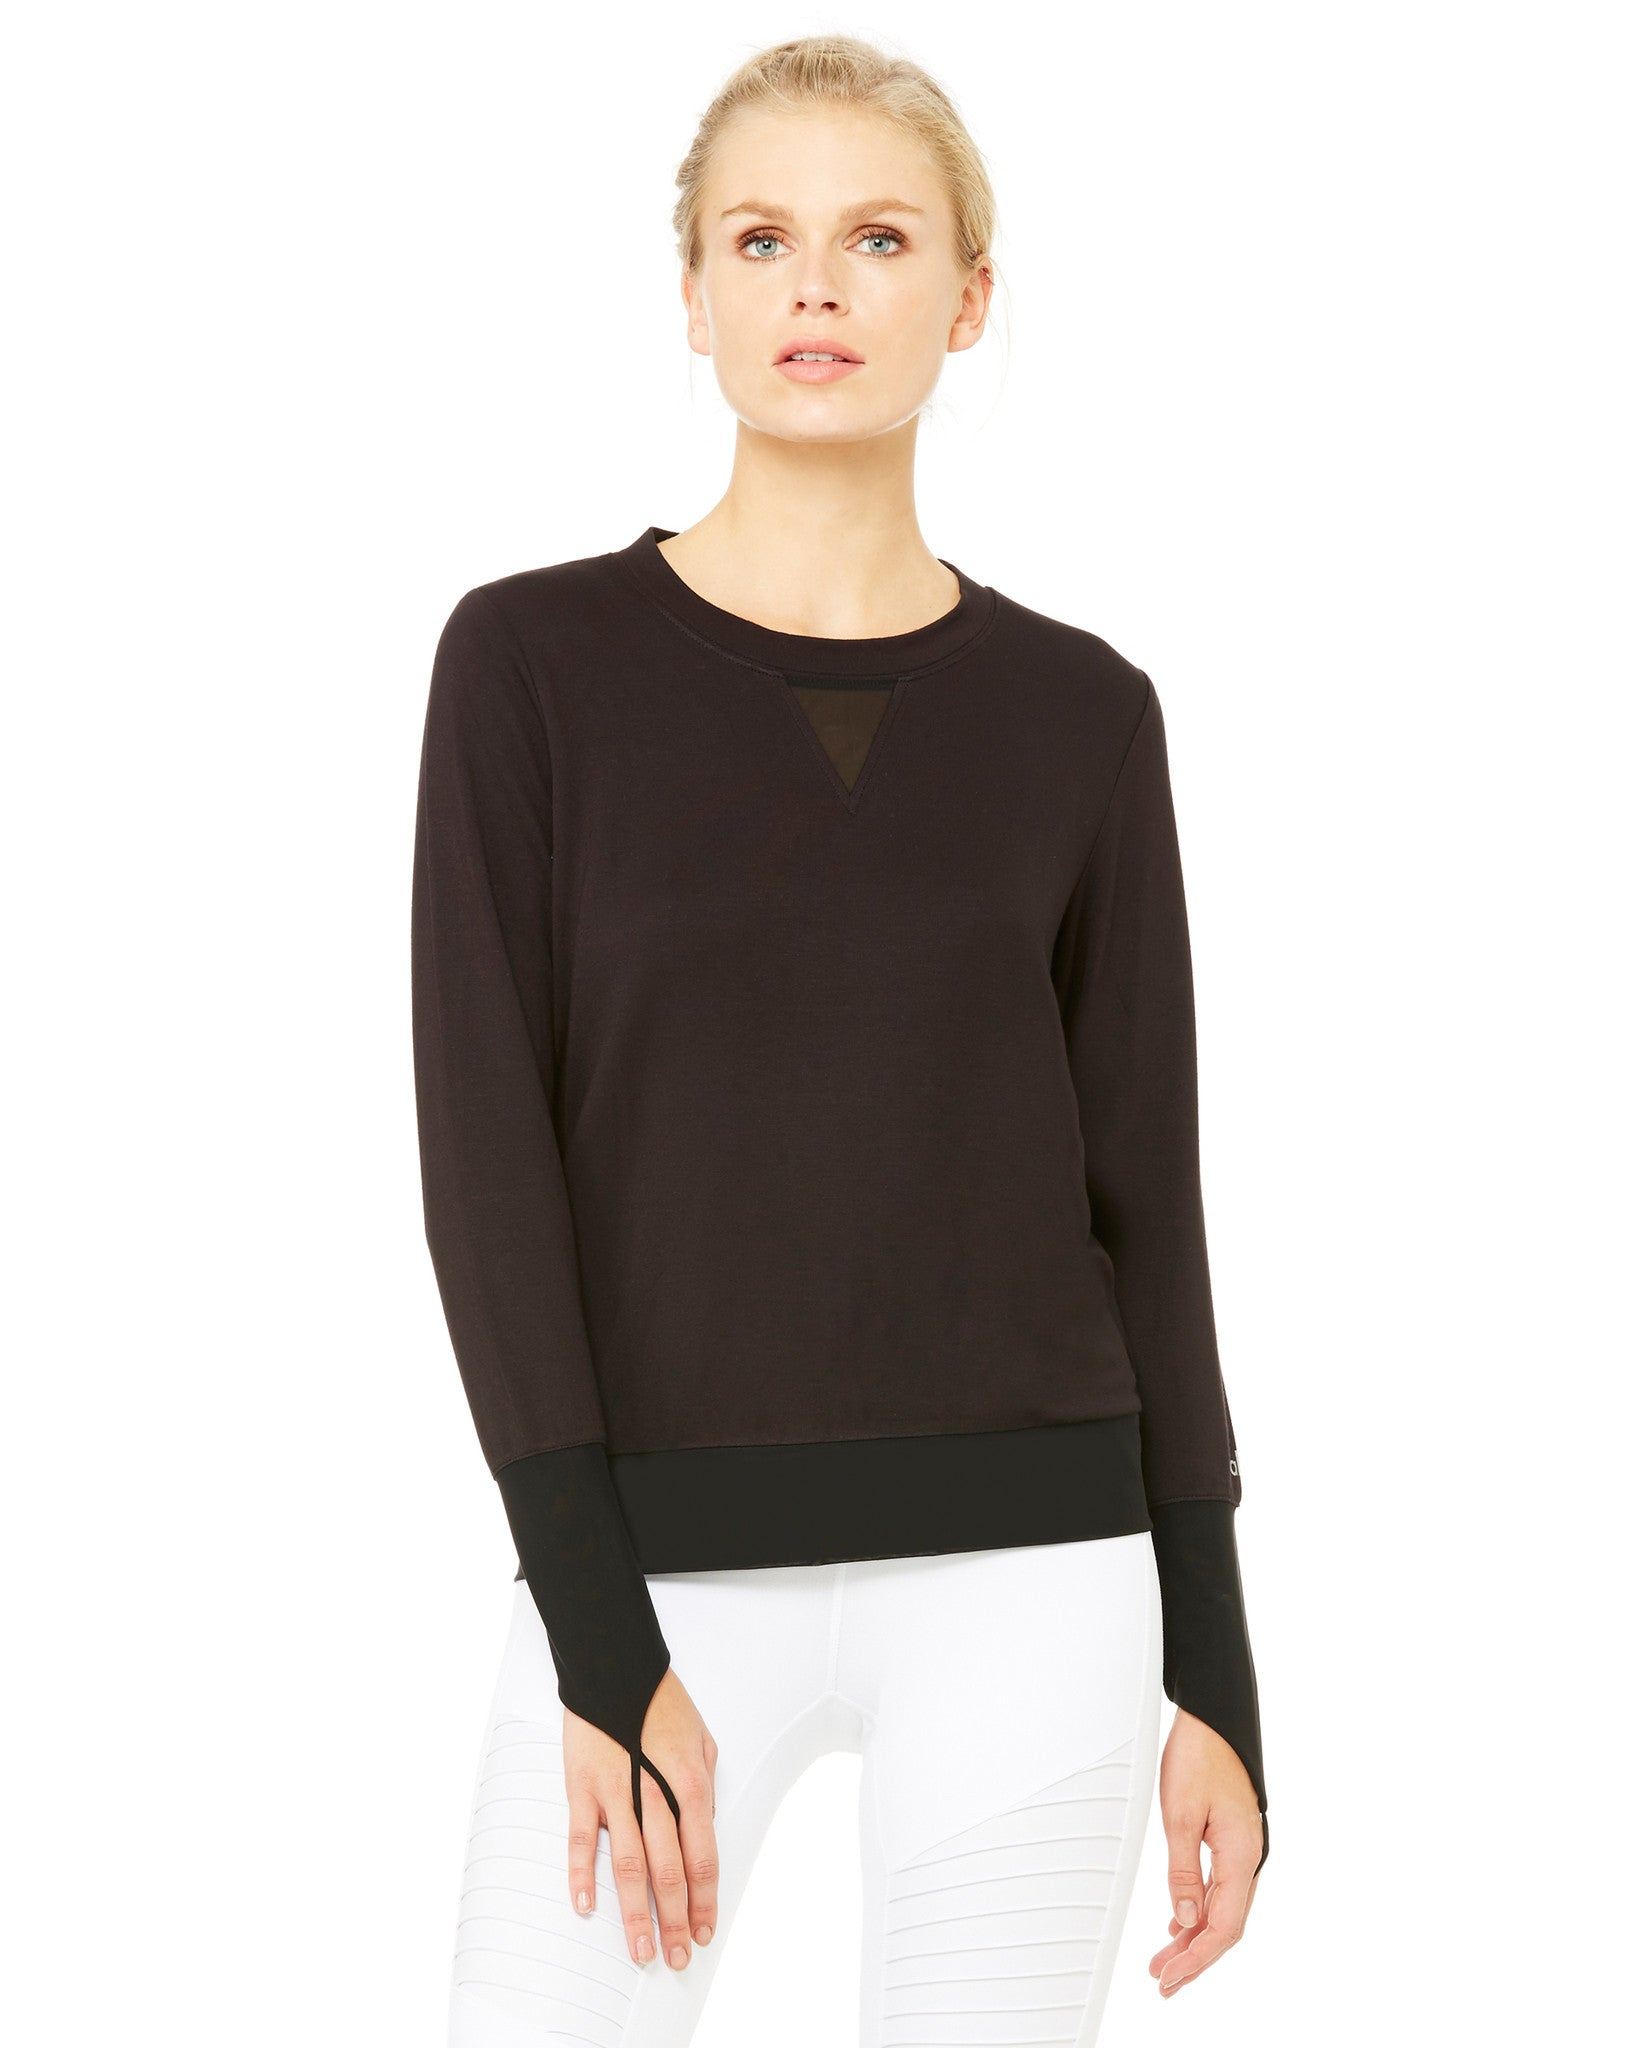 Serene Long Sleeve Top in Black - AMAIA - 1